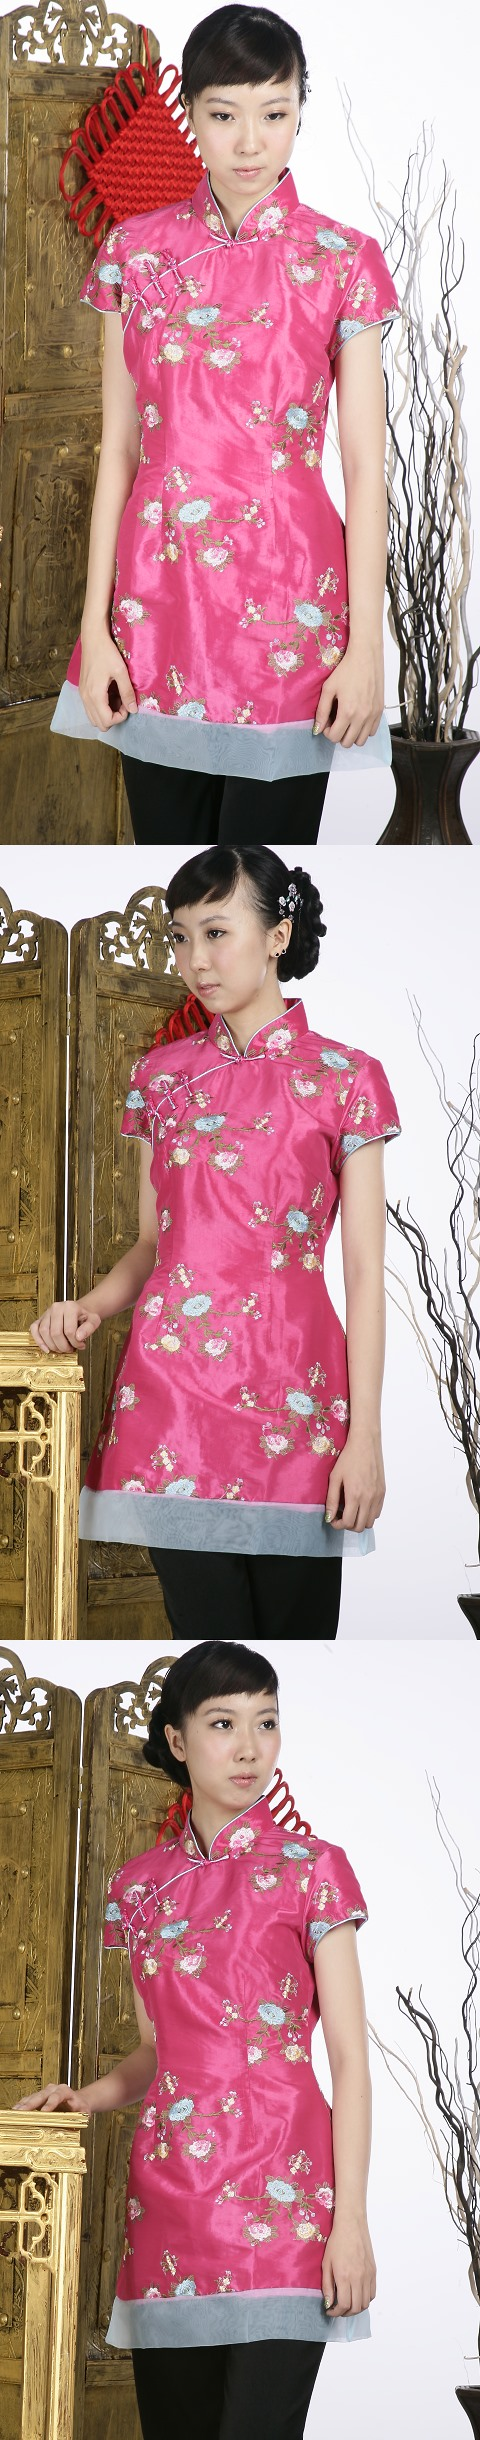 Short-sleeve Floral Embroidery Mini Cheongsam Dress (Fuchsia)